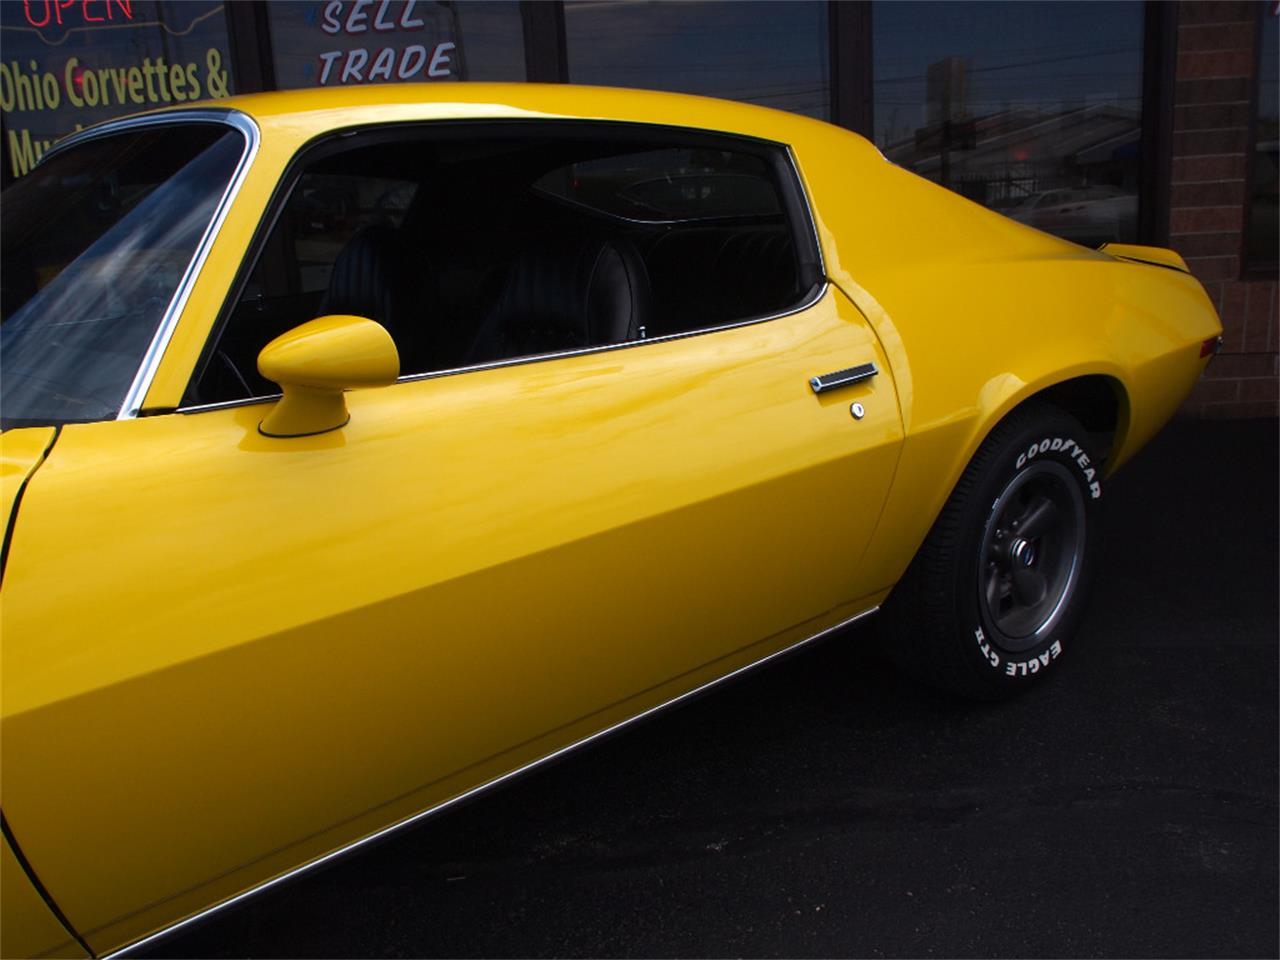 Large Picture of Classic 1971 Chevrolet Camaro located in North Canton Ohio Offered by Ohio Corvettes and Muscle Cars - KYTQ